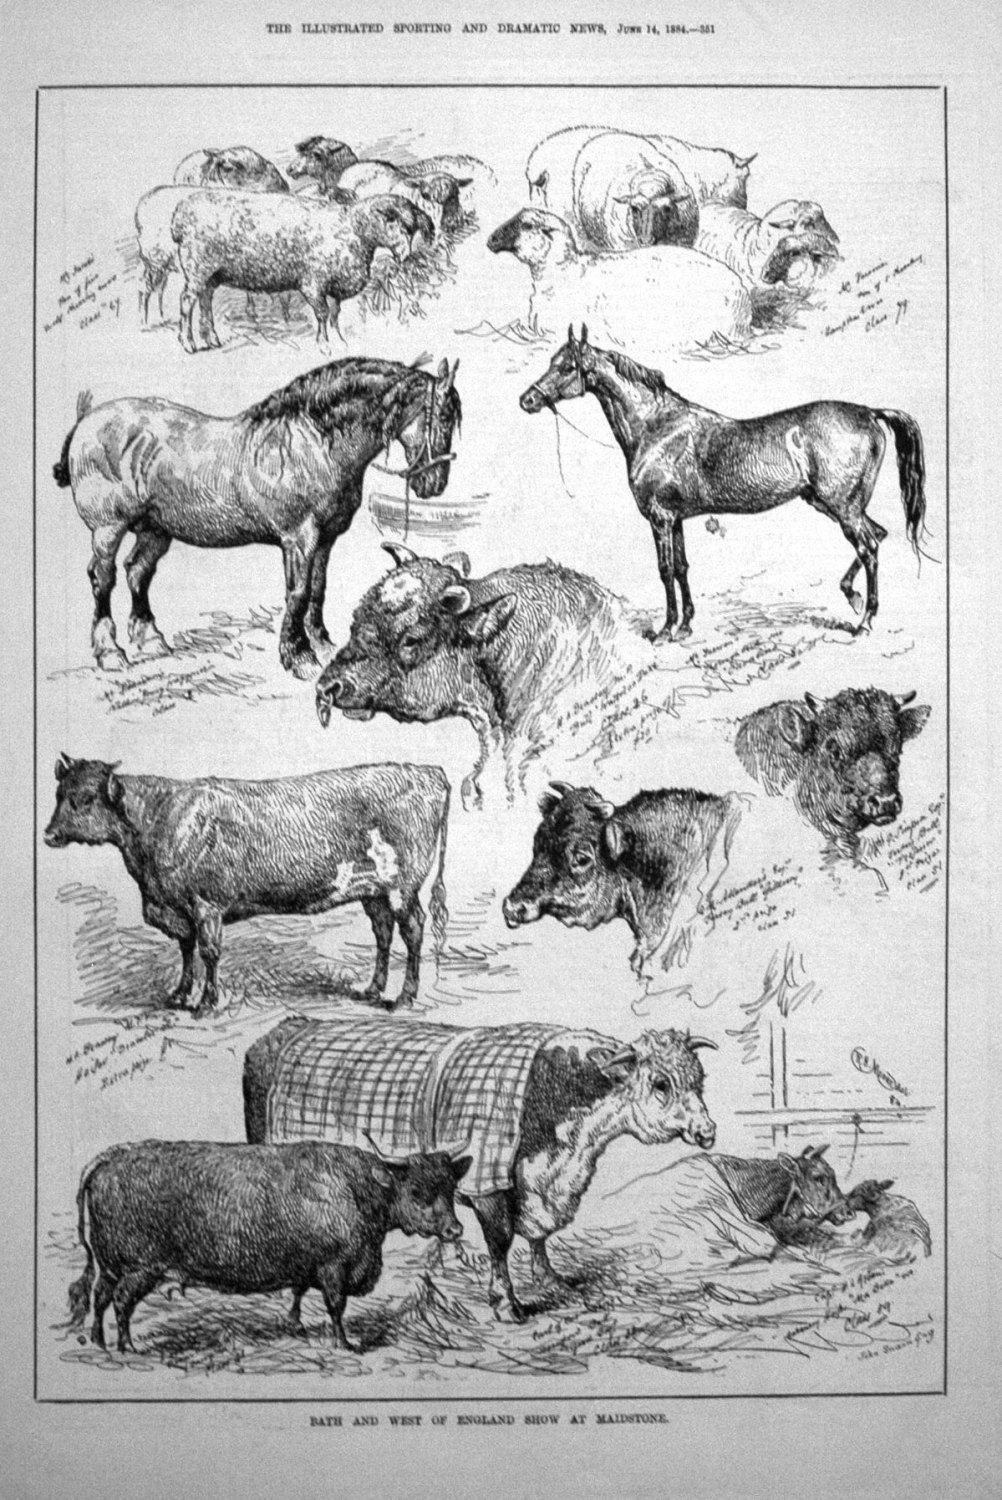 Bath and West of England Show at Maidstone. 1884